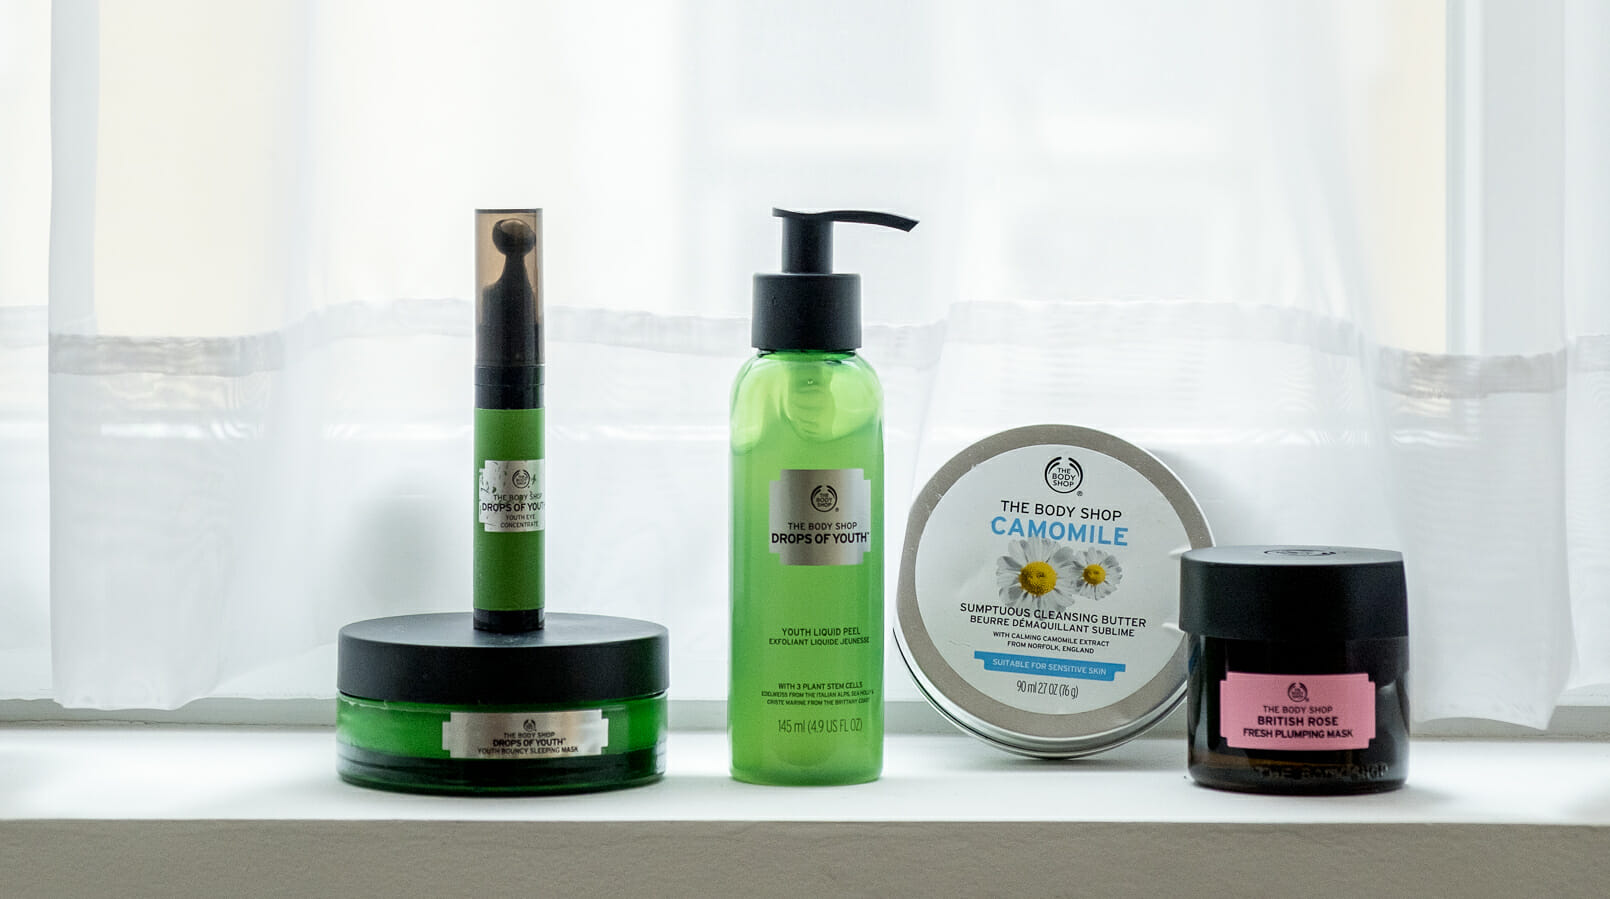 Le Fashionaire My top 5 The Body Shop products camomile cleansing butter green drops of youth scrub night mask drops of youth the body shop eyes roll on drops of youth 4739F EN